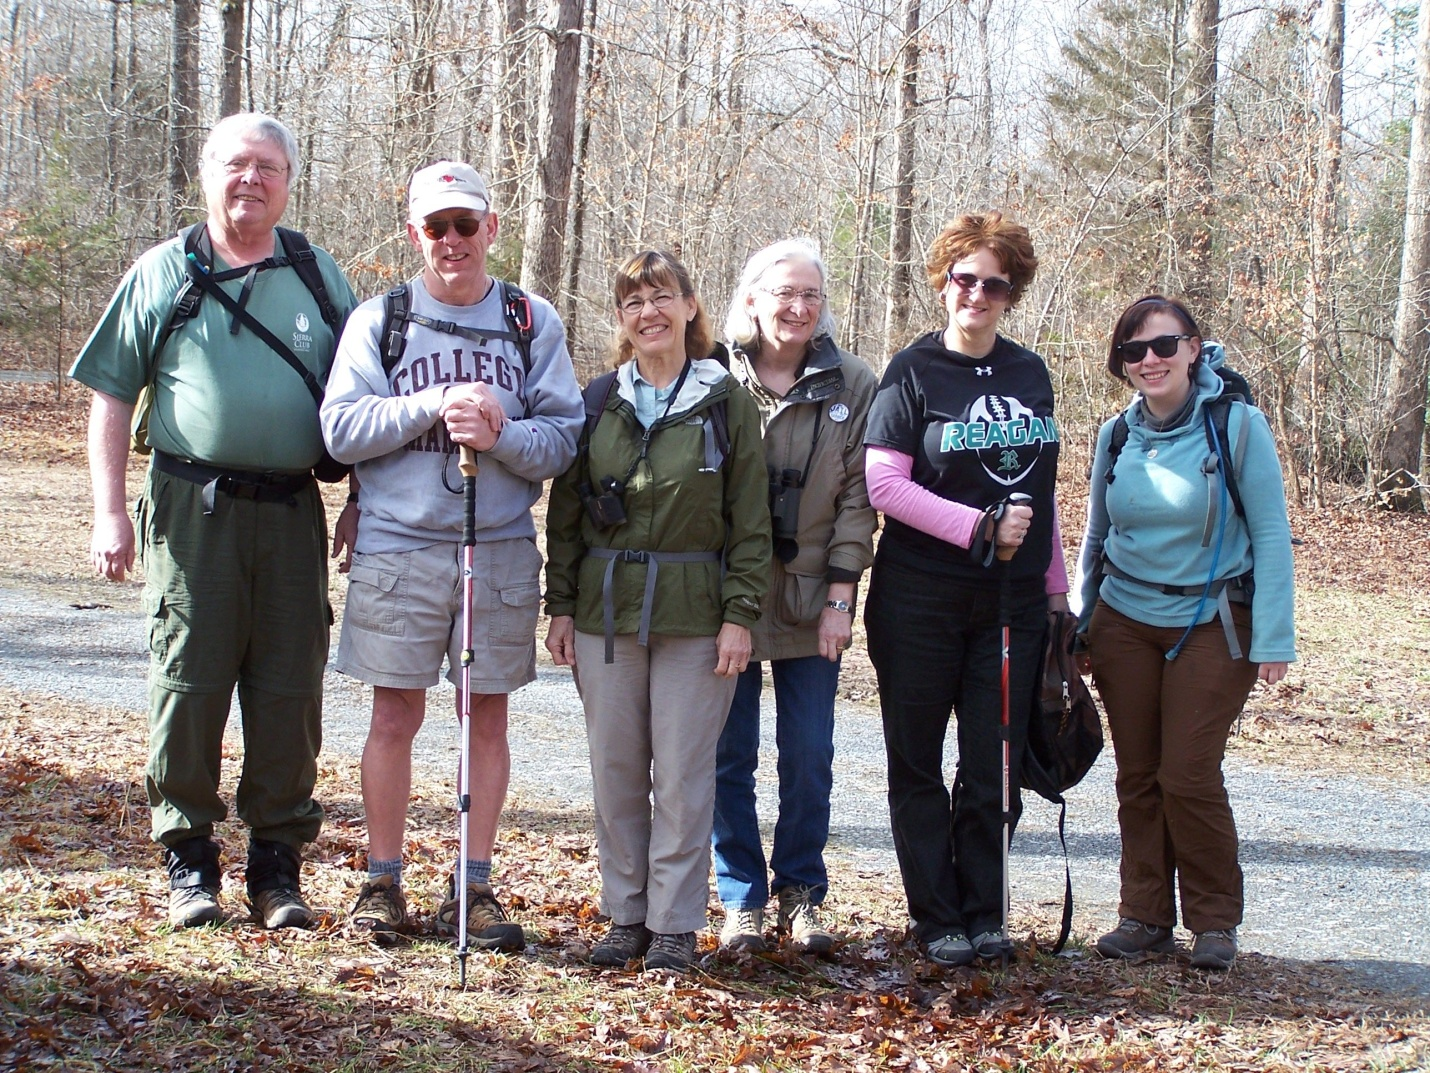 Before the hike. From left to right: Henry Fansler, Mike Hill, Laura Phail, Cornelia Barr, Kelli Bush, and Kim Fleming.